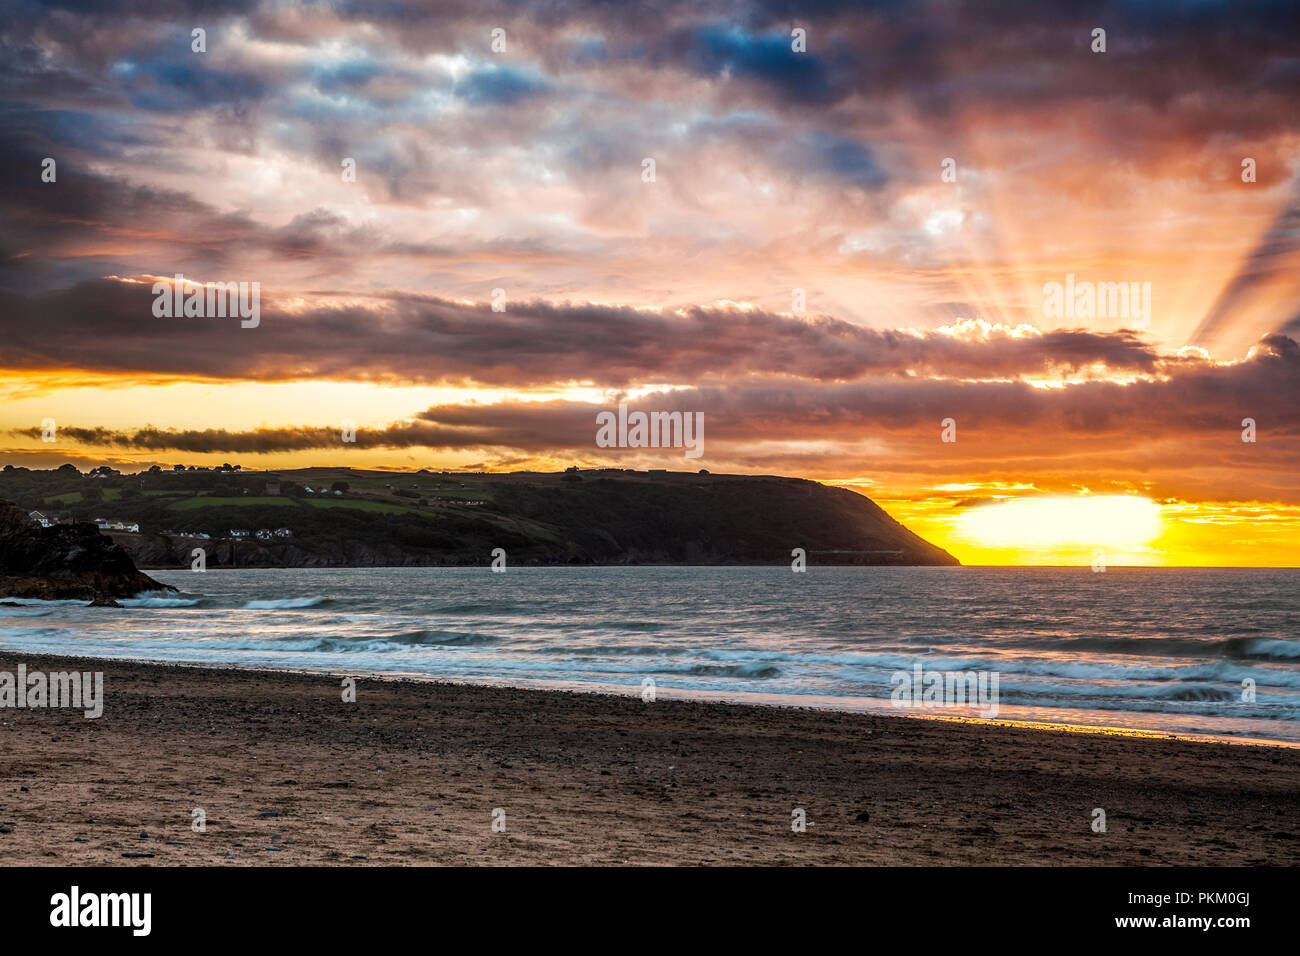 Sunset over Tresaith beach in Ceredigion, Wales, looking towards Aberporth. Stock Photo